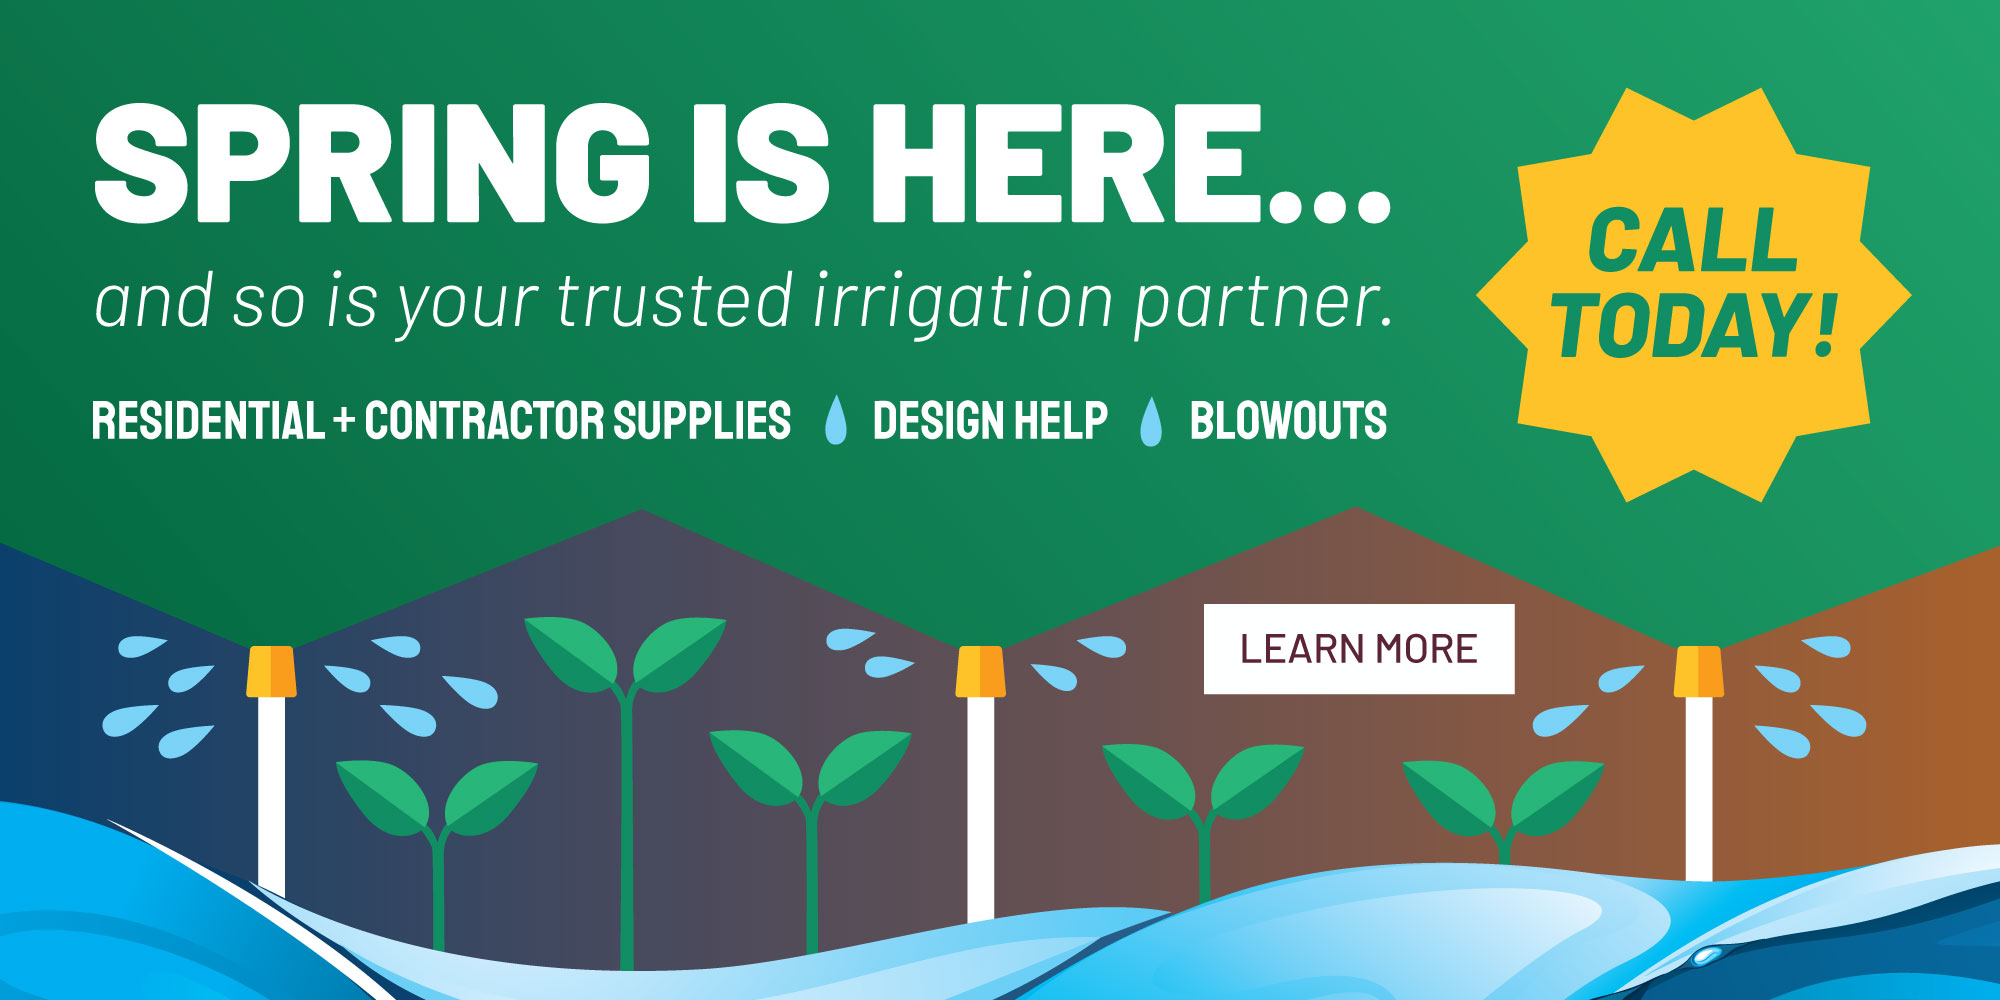 Spring is here and so is your trusted irrigation partner.